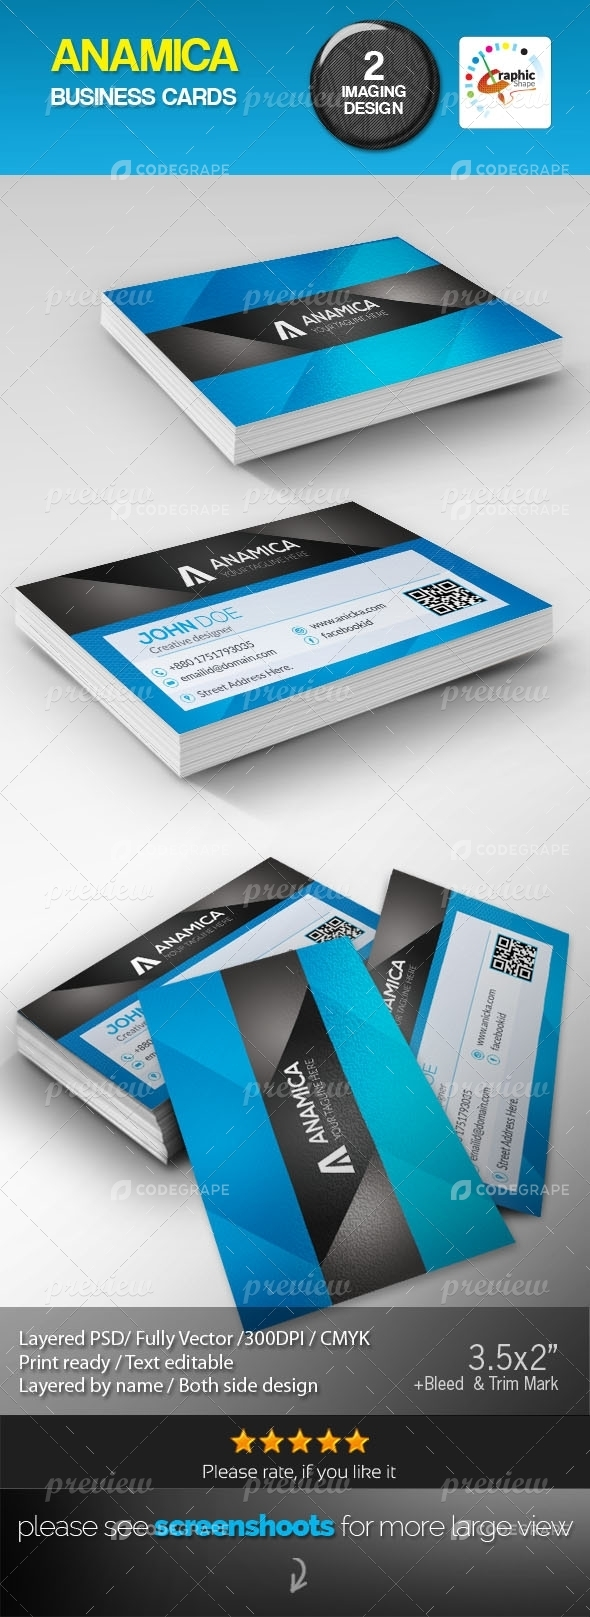 Anamica Business Cards